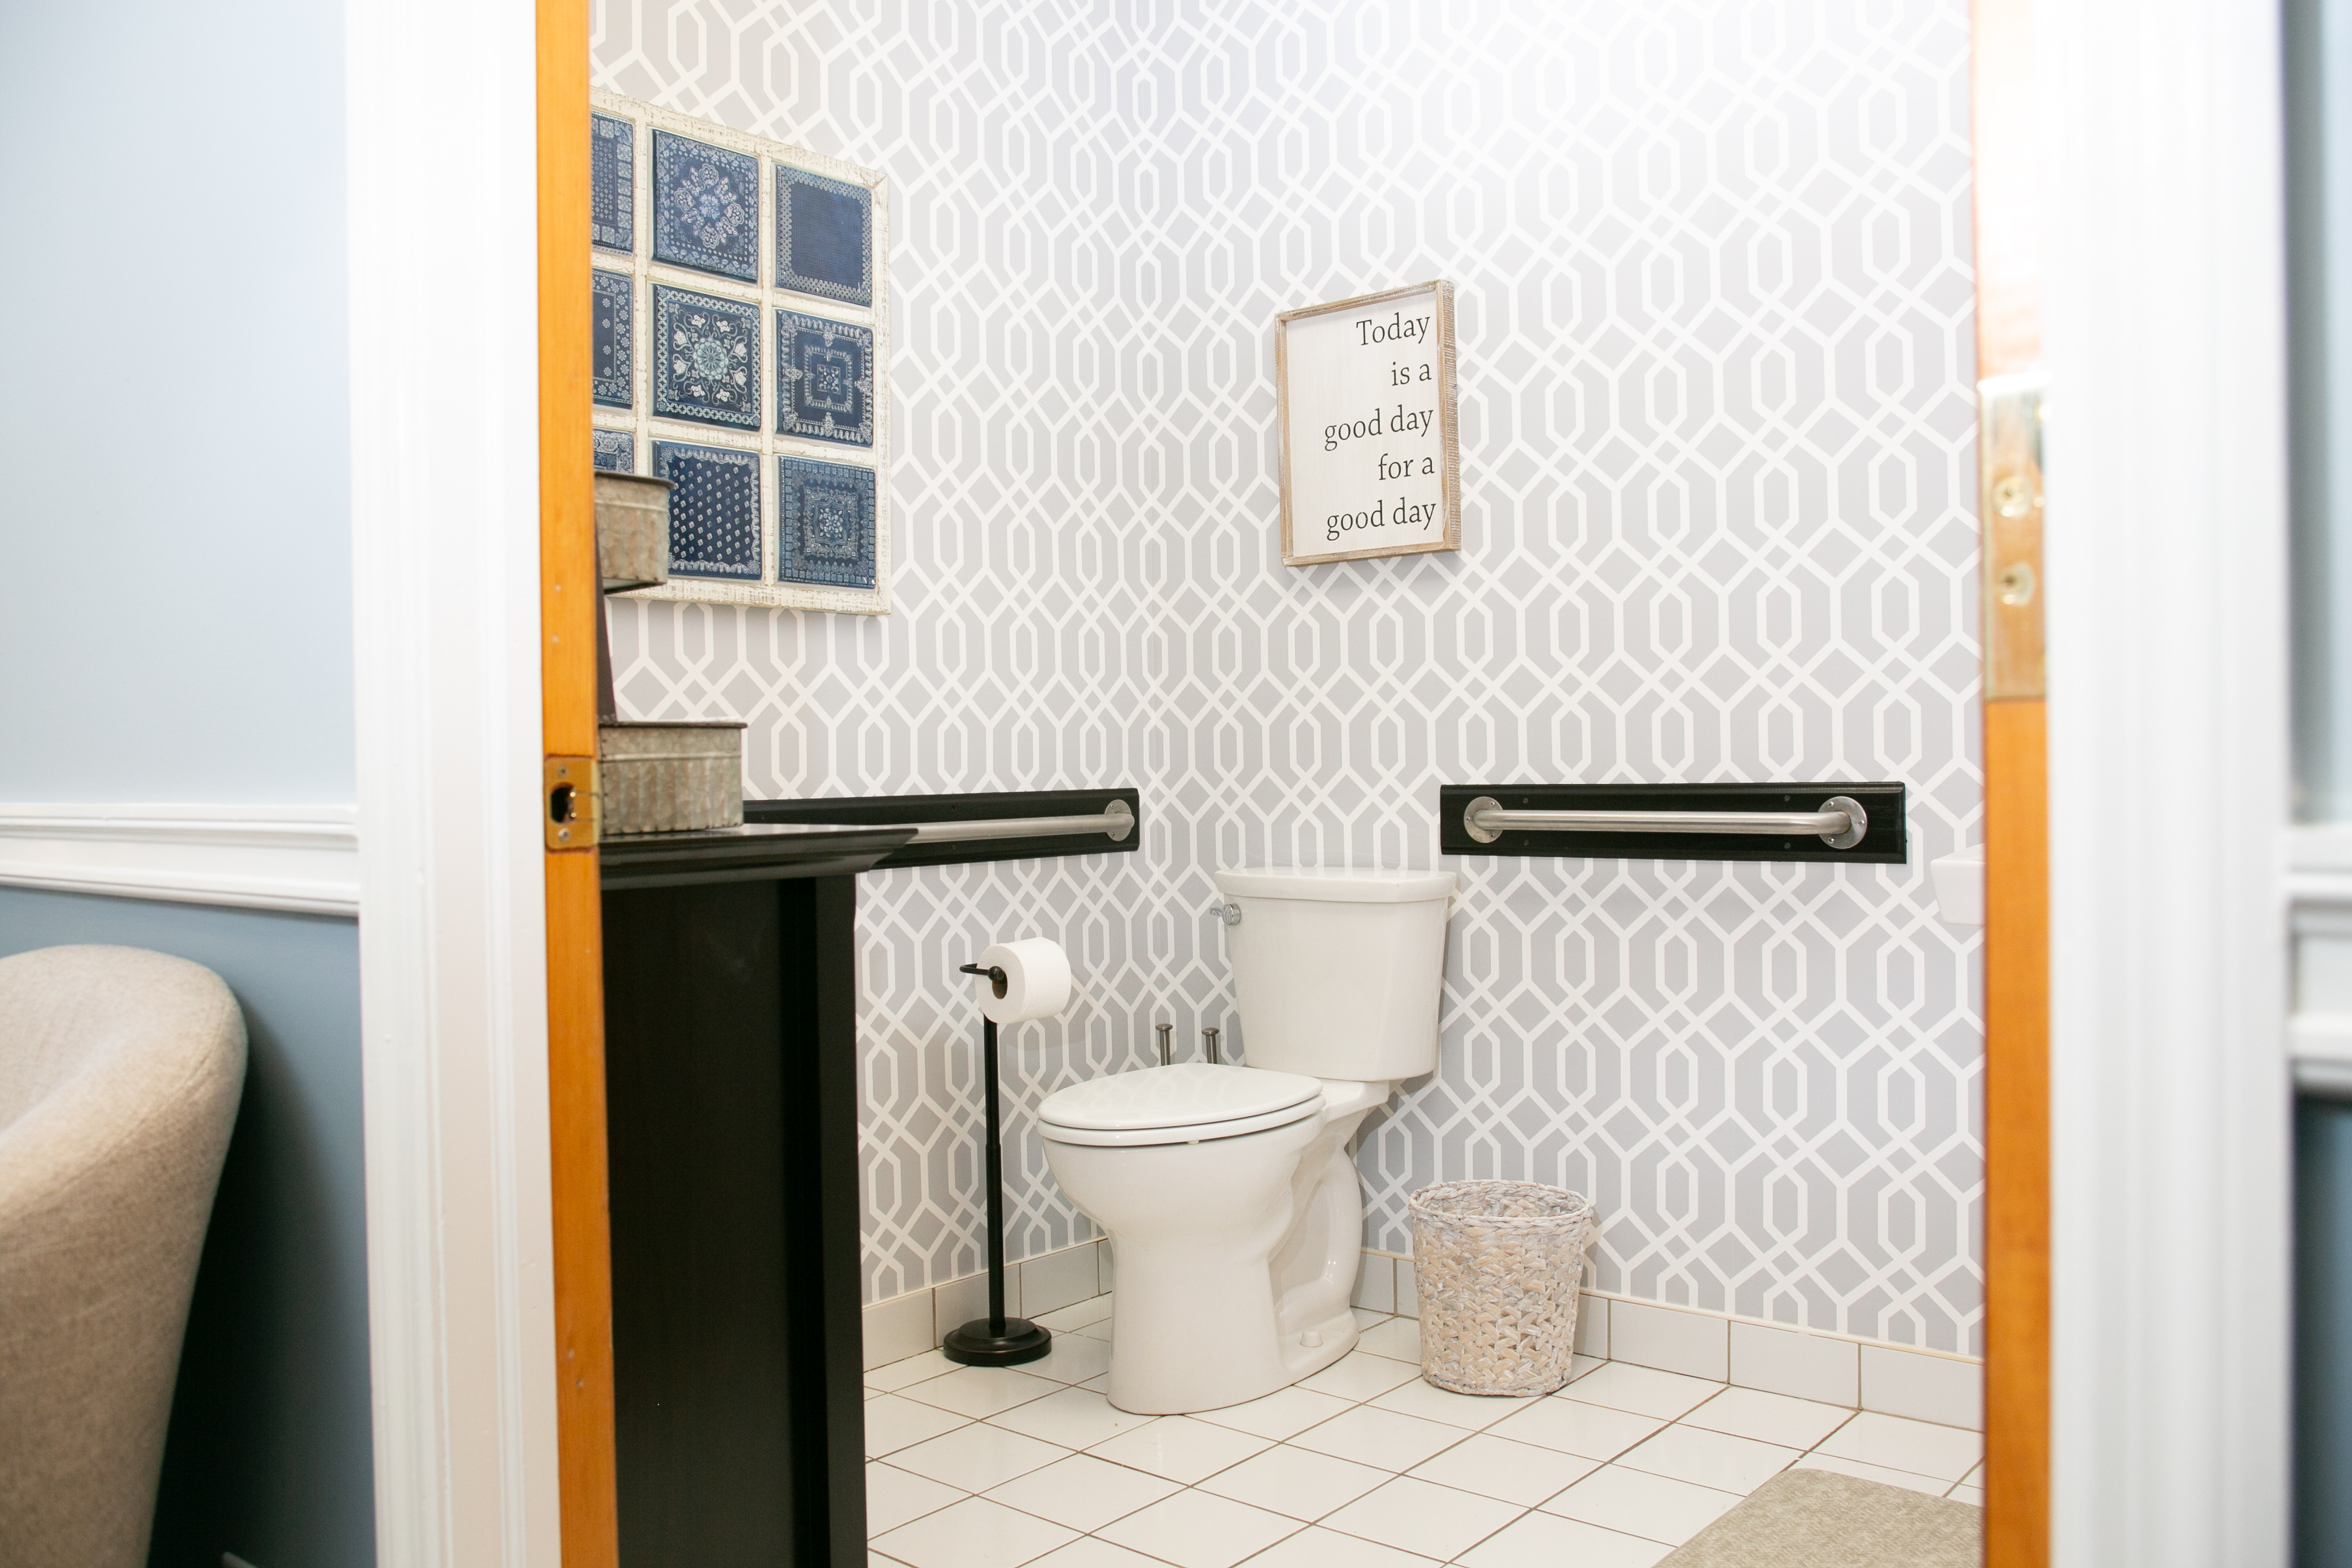 Bathroom | Our Office | Good Life Center | Therapy Services in Cranford, NJ | 07016